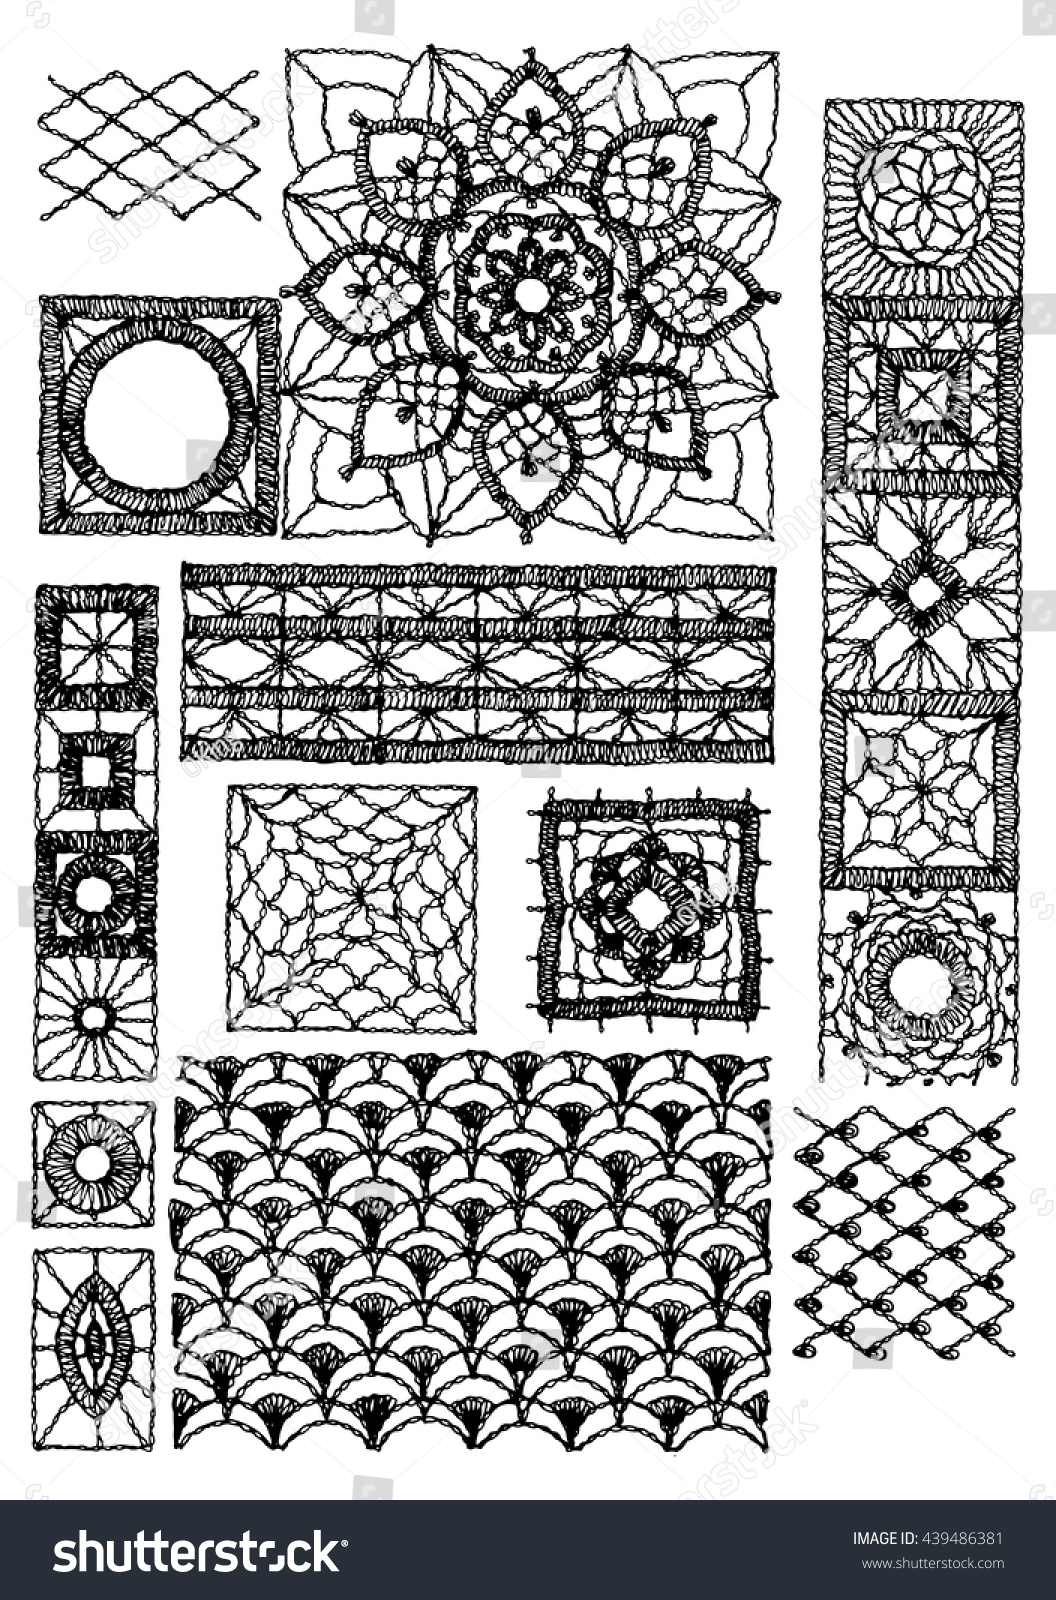 Set Isolated Knitted Lace Borders Openwork Stock Vector (2018 ...